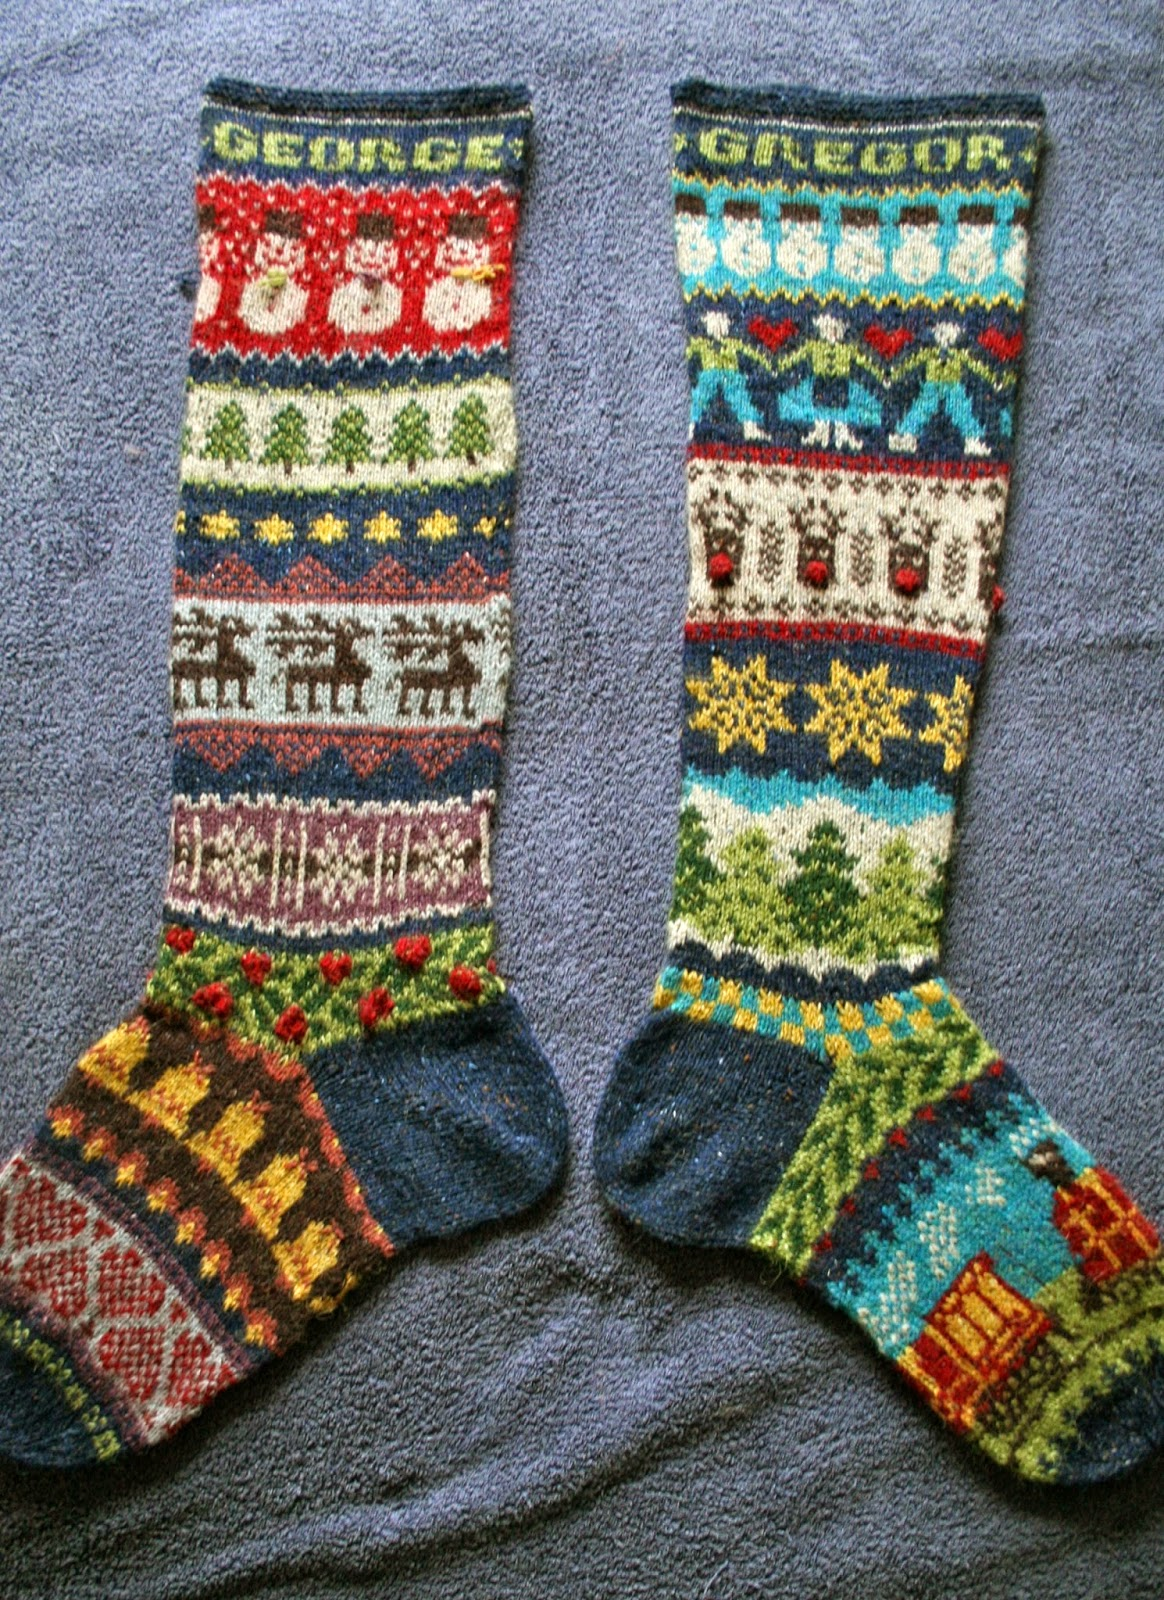 Helen WINS Christmas, Fair Isle Knitting, the Internet and My Heart ... Basically Everything.